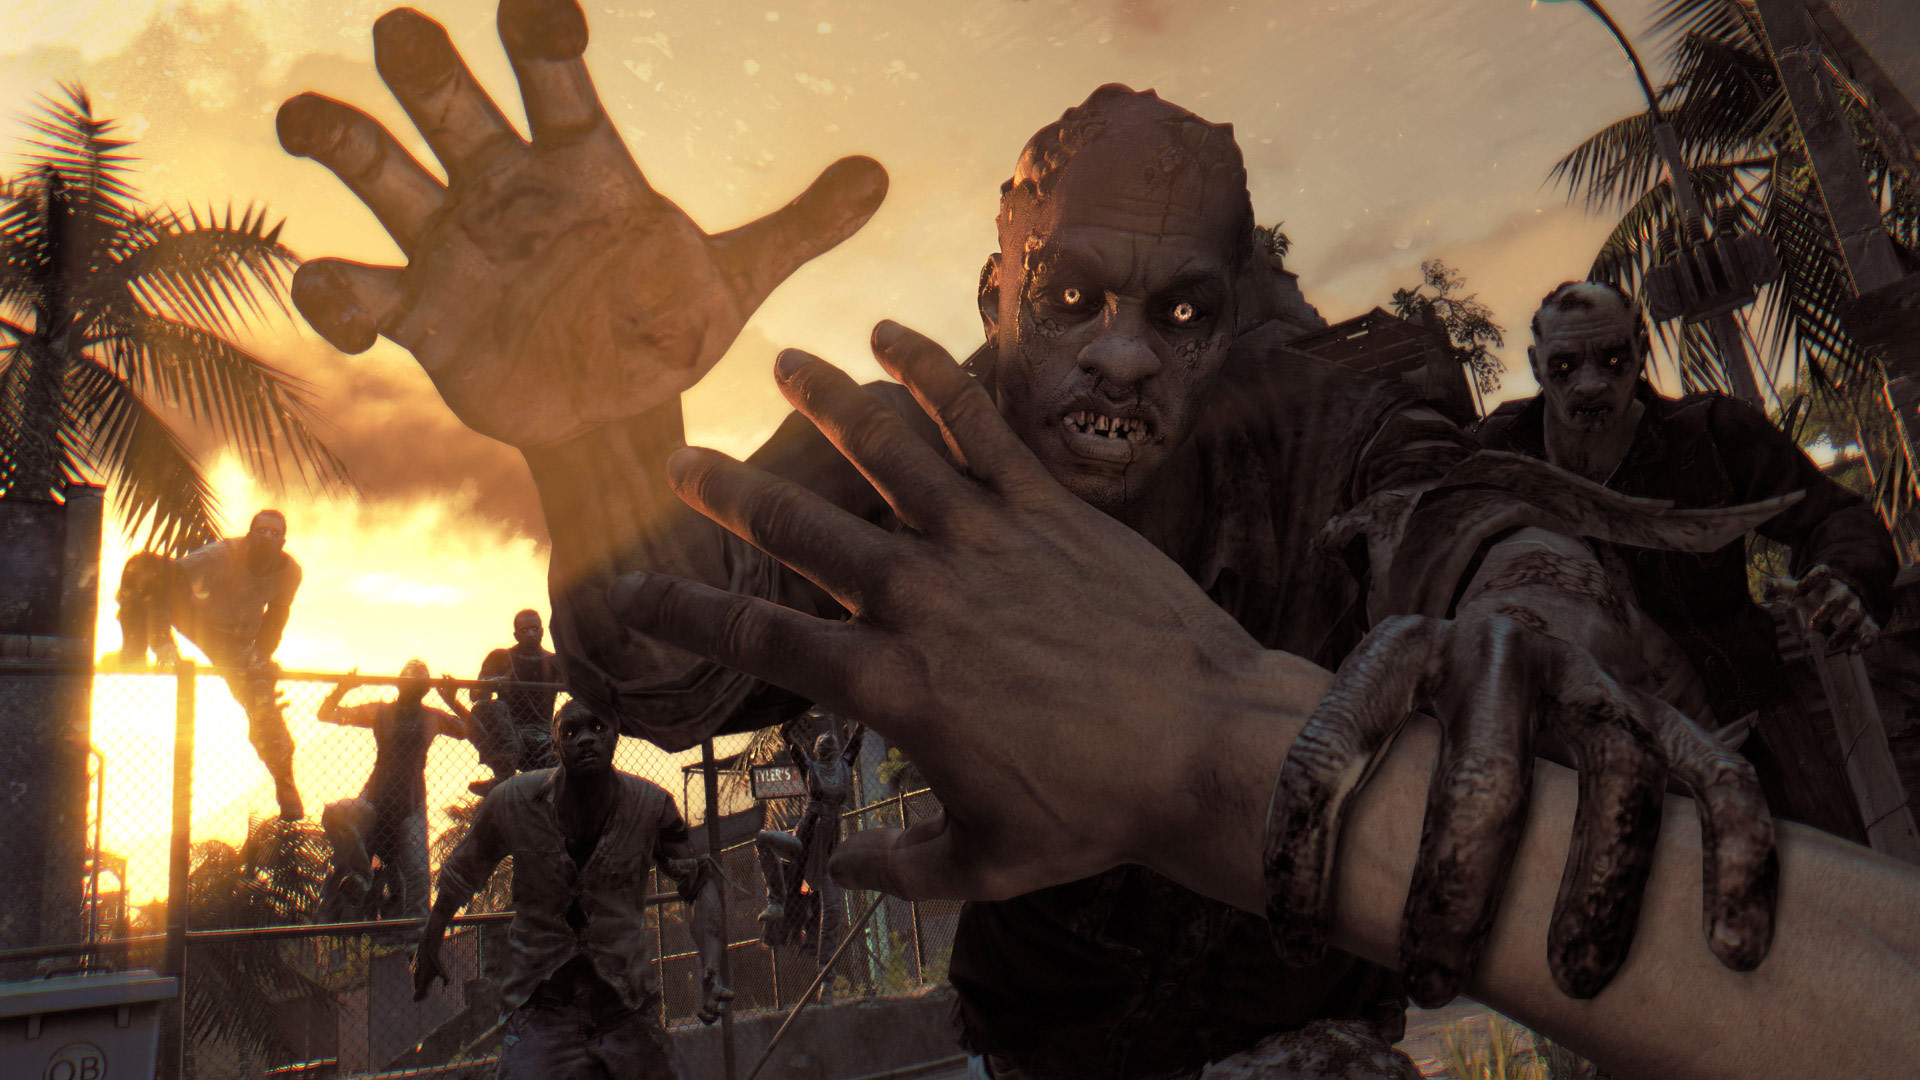 Dying Light screen#1